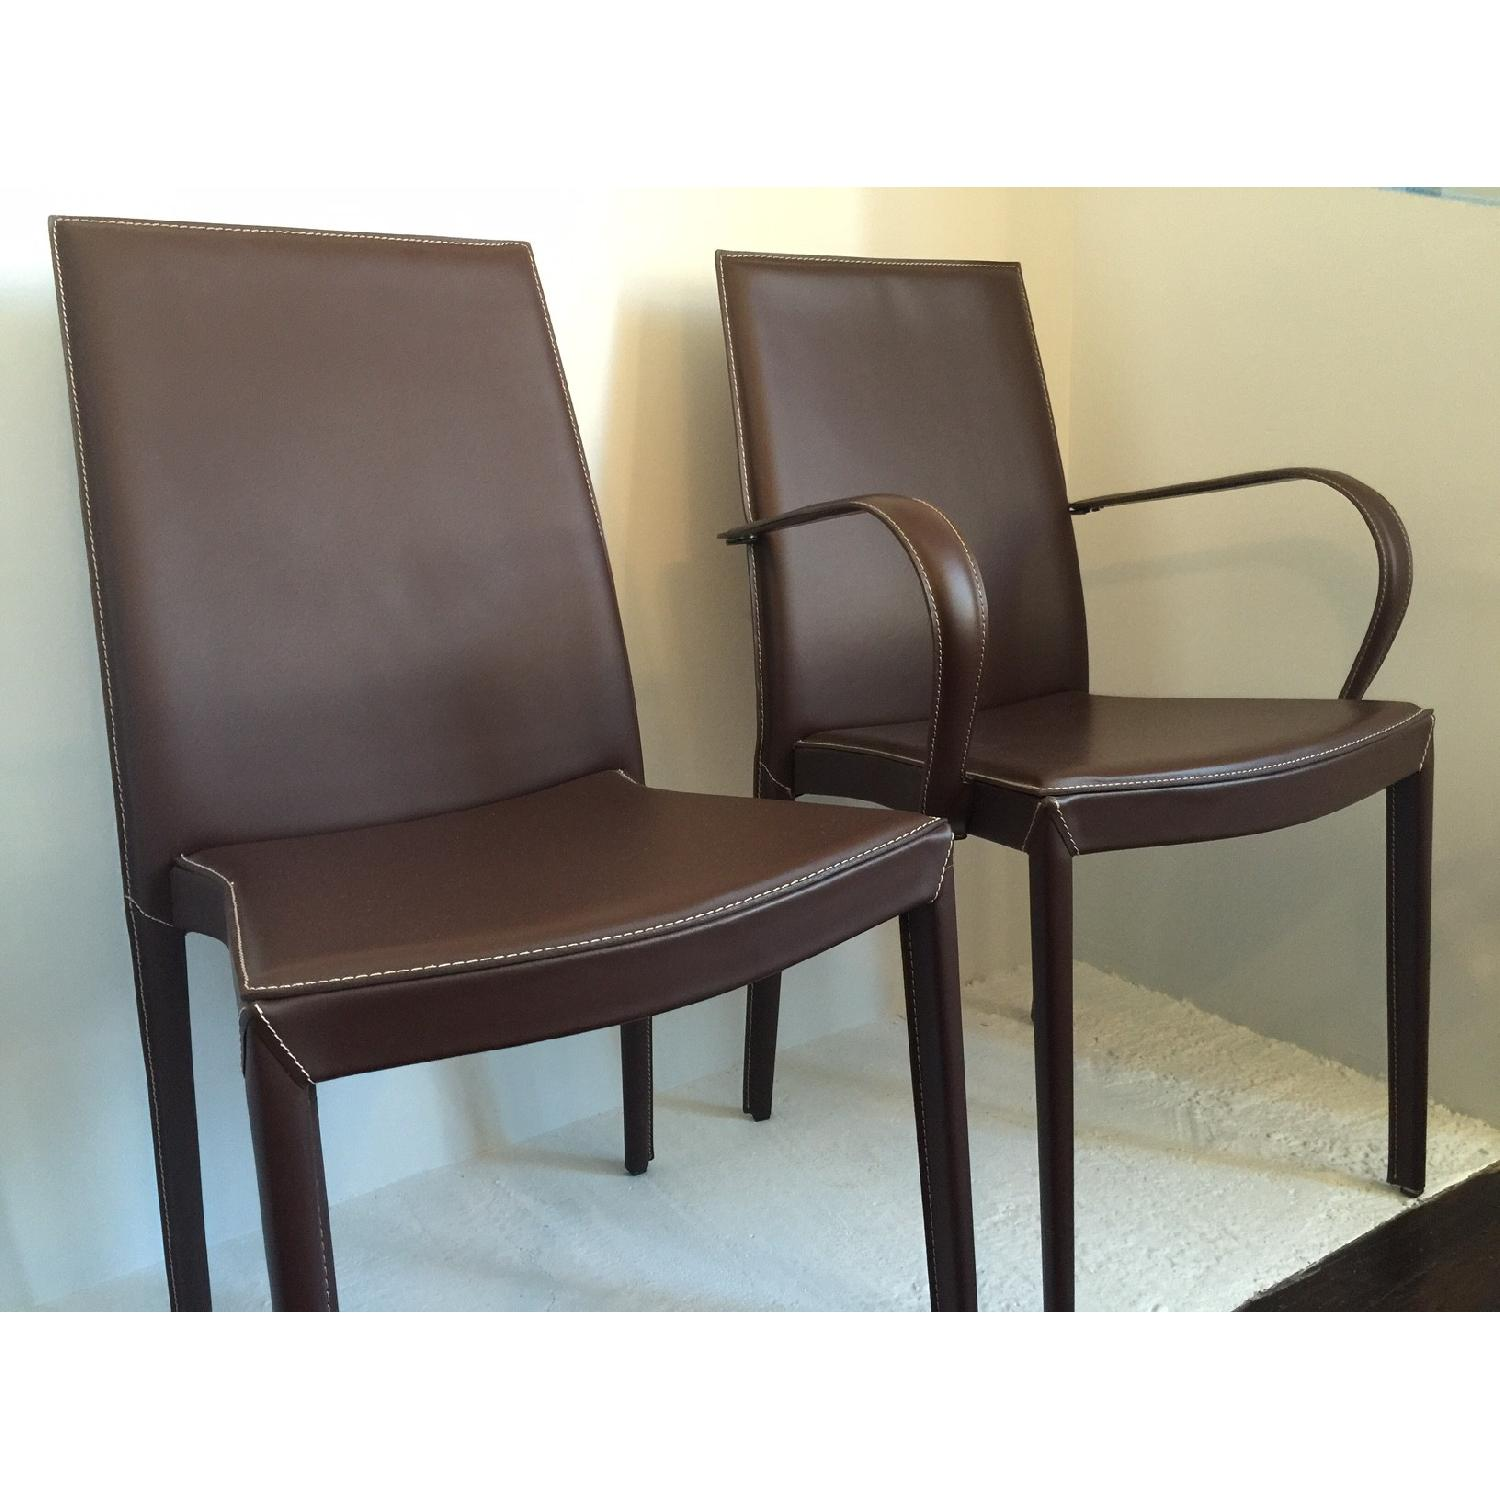 Calligaris Italian Dining Room Chairs - Set of 6